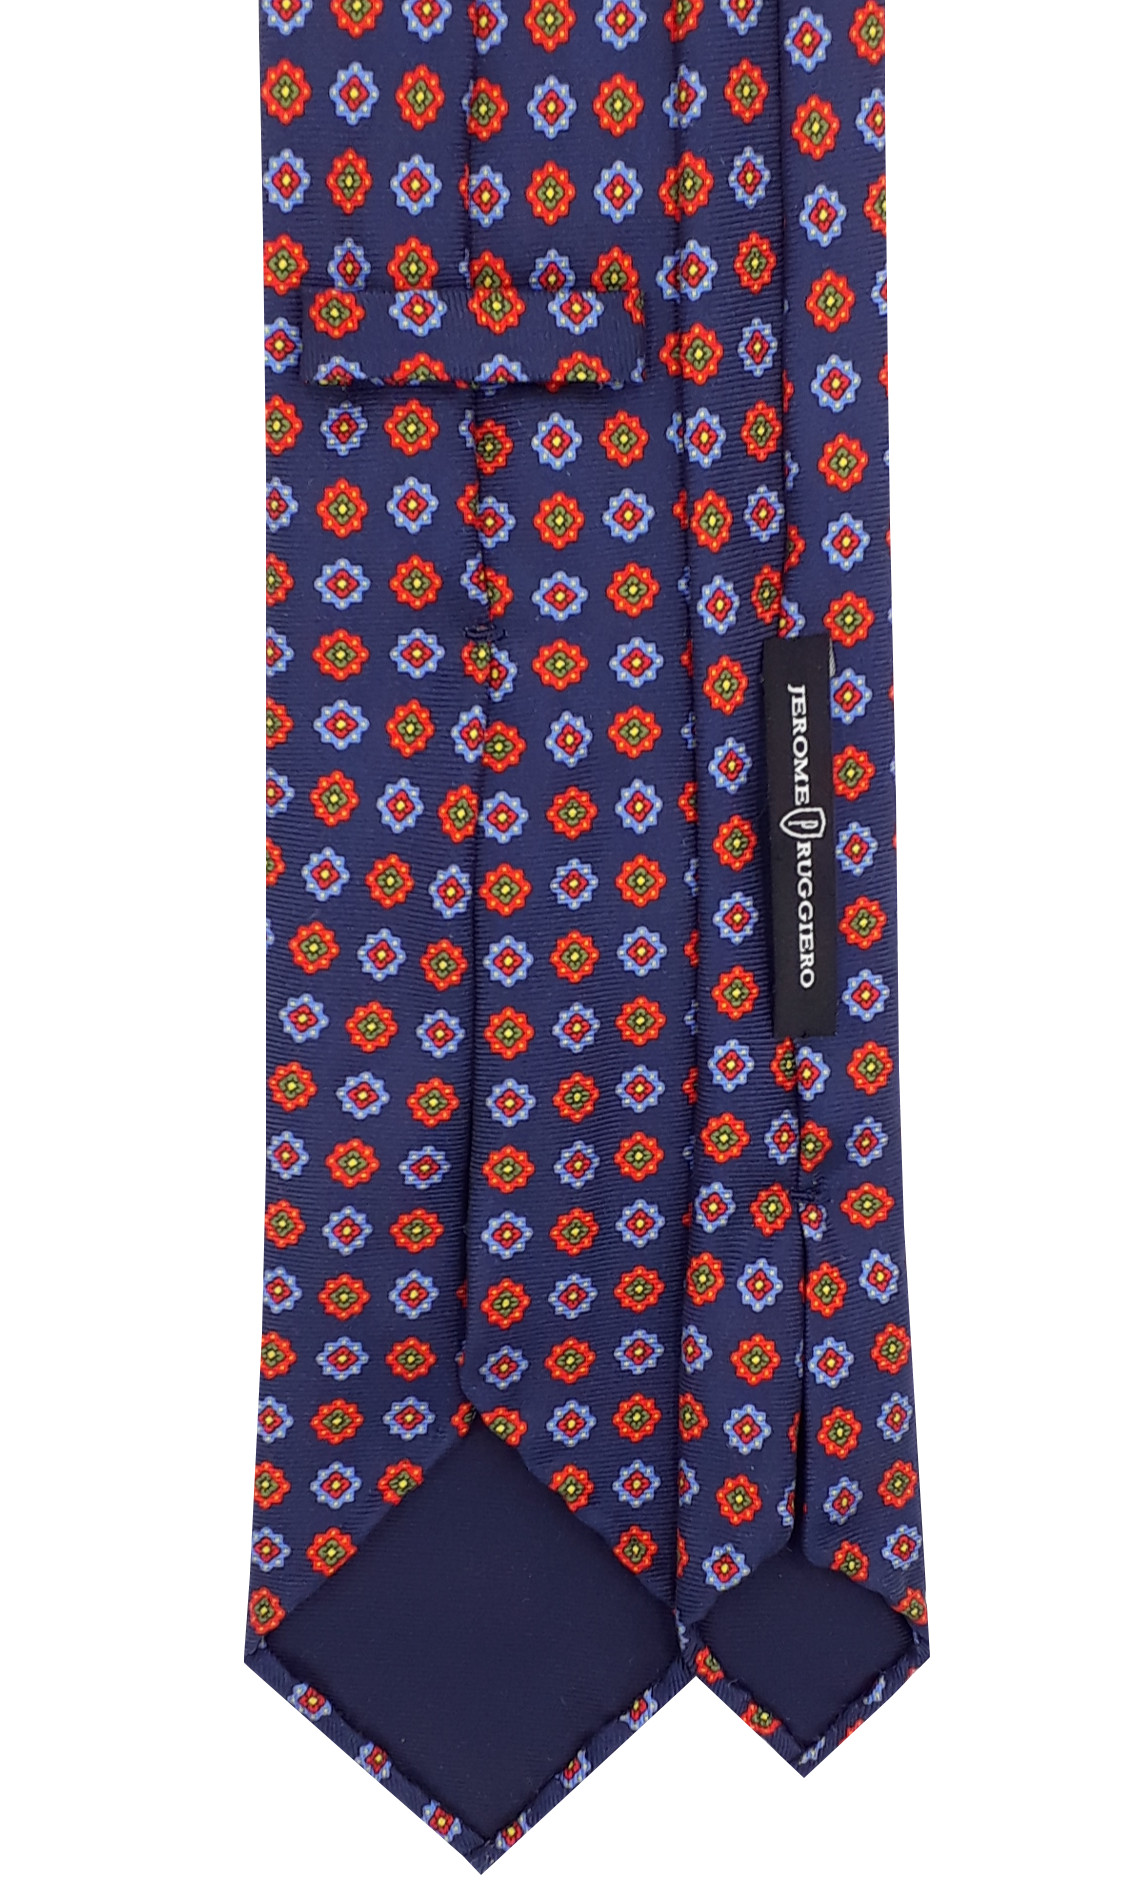 Mixed orange flowers blue tie - 5 fold